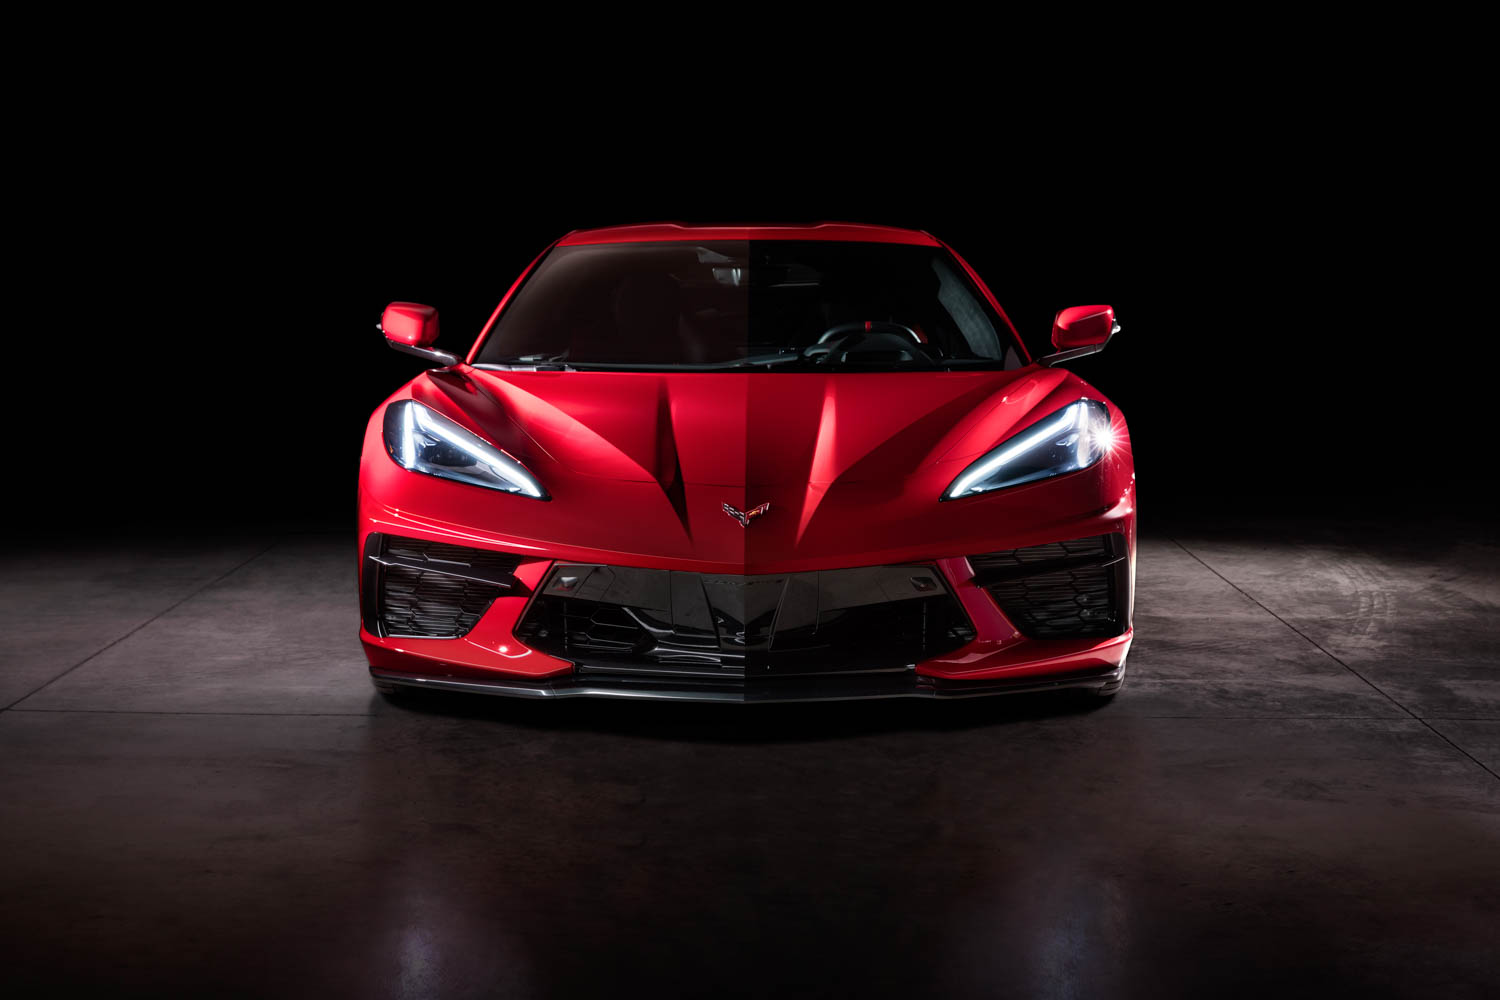 Full 2020 Corvette Stingray order guide may reveal base LT2 power thumbnail